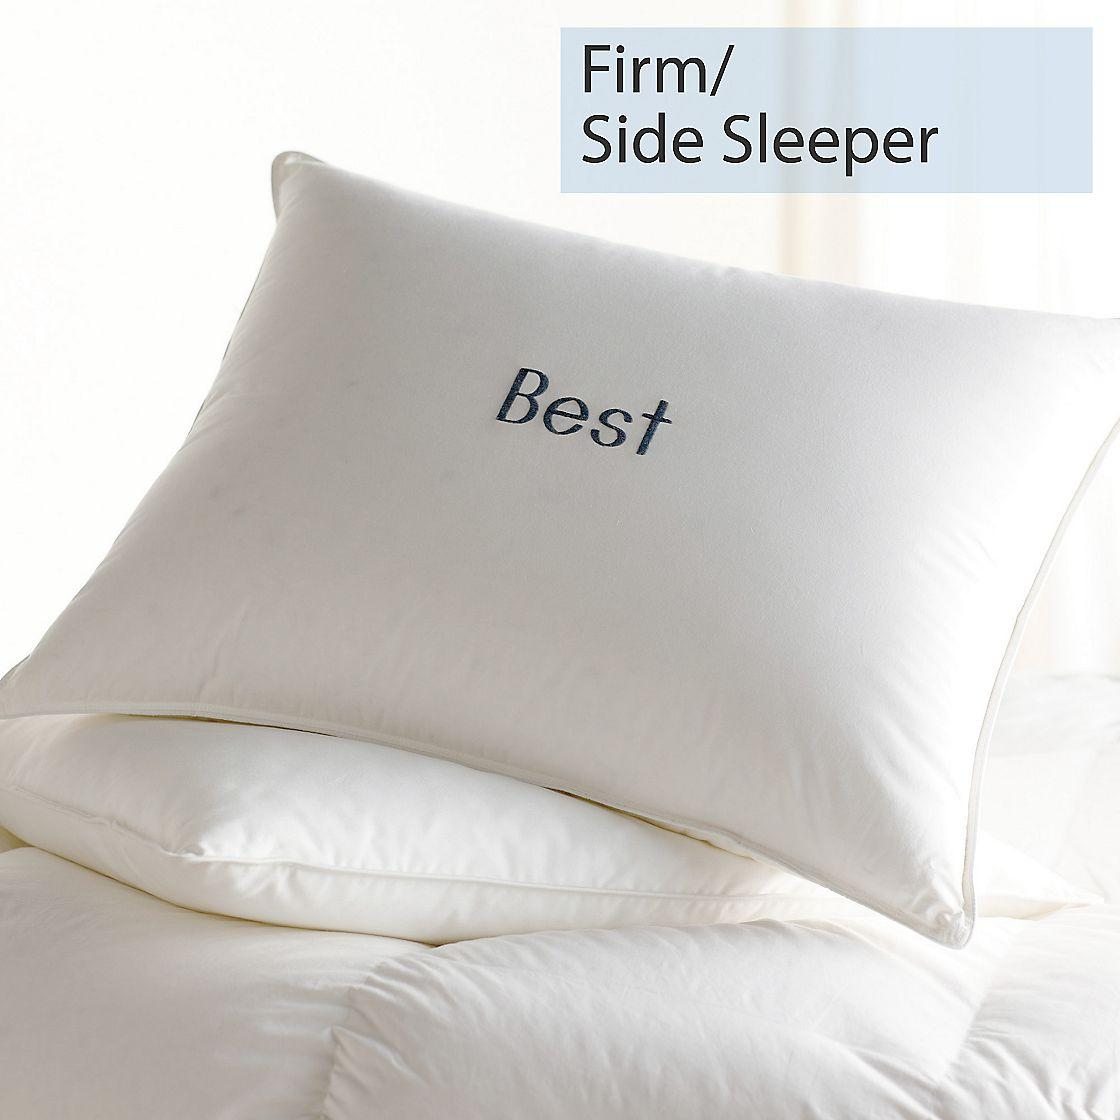 My-pillow-factory Down Firm Side Sleeper Best Pillows